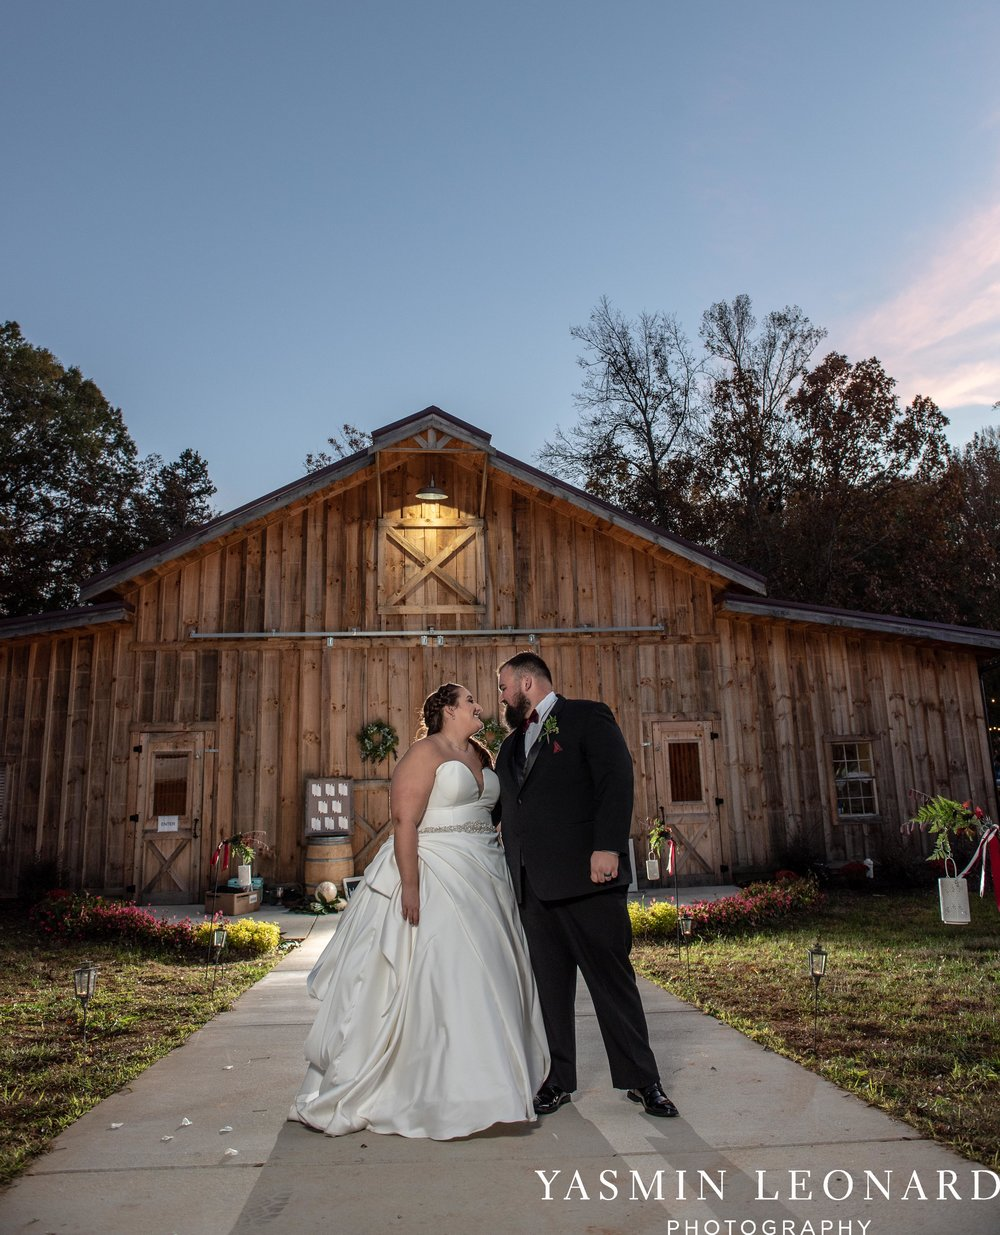 Wesley Memorial United Methodist Church - Old Homeplace Winery - High Point Weddings - High Point Wedding Photographer - NC Weddings - NC Barn Venue - Yasmin Leonard Photography-63.jpg